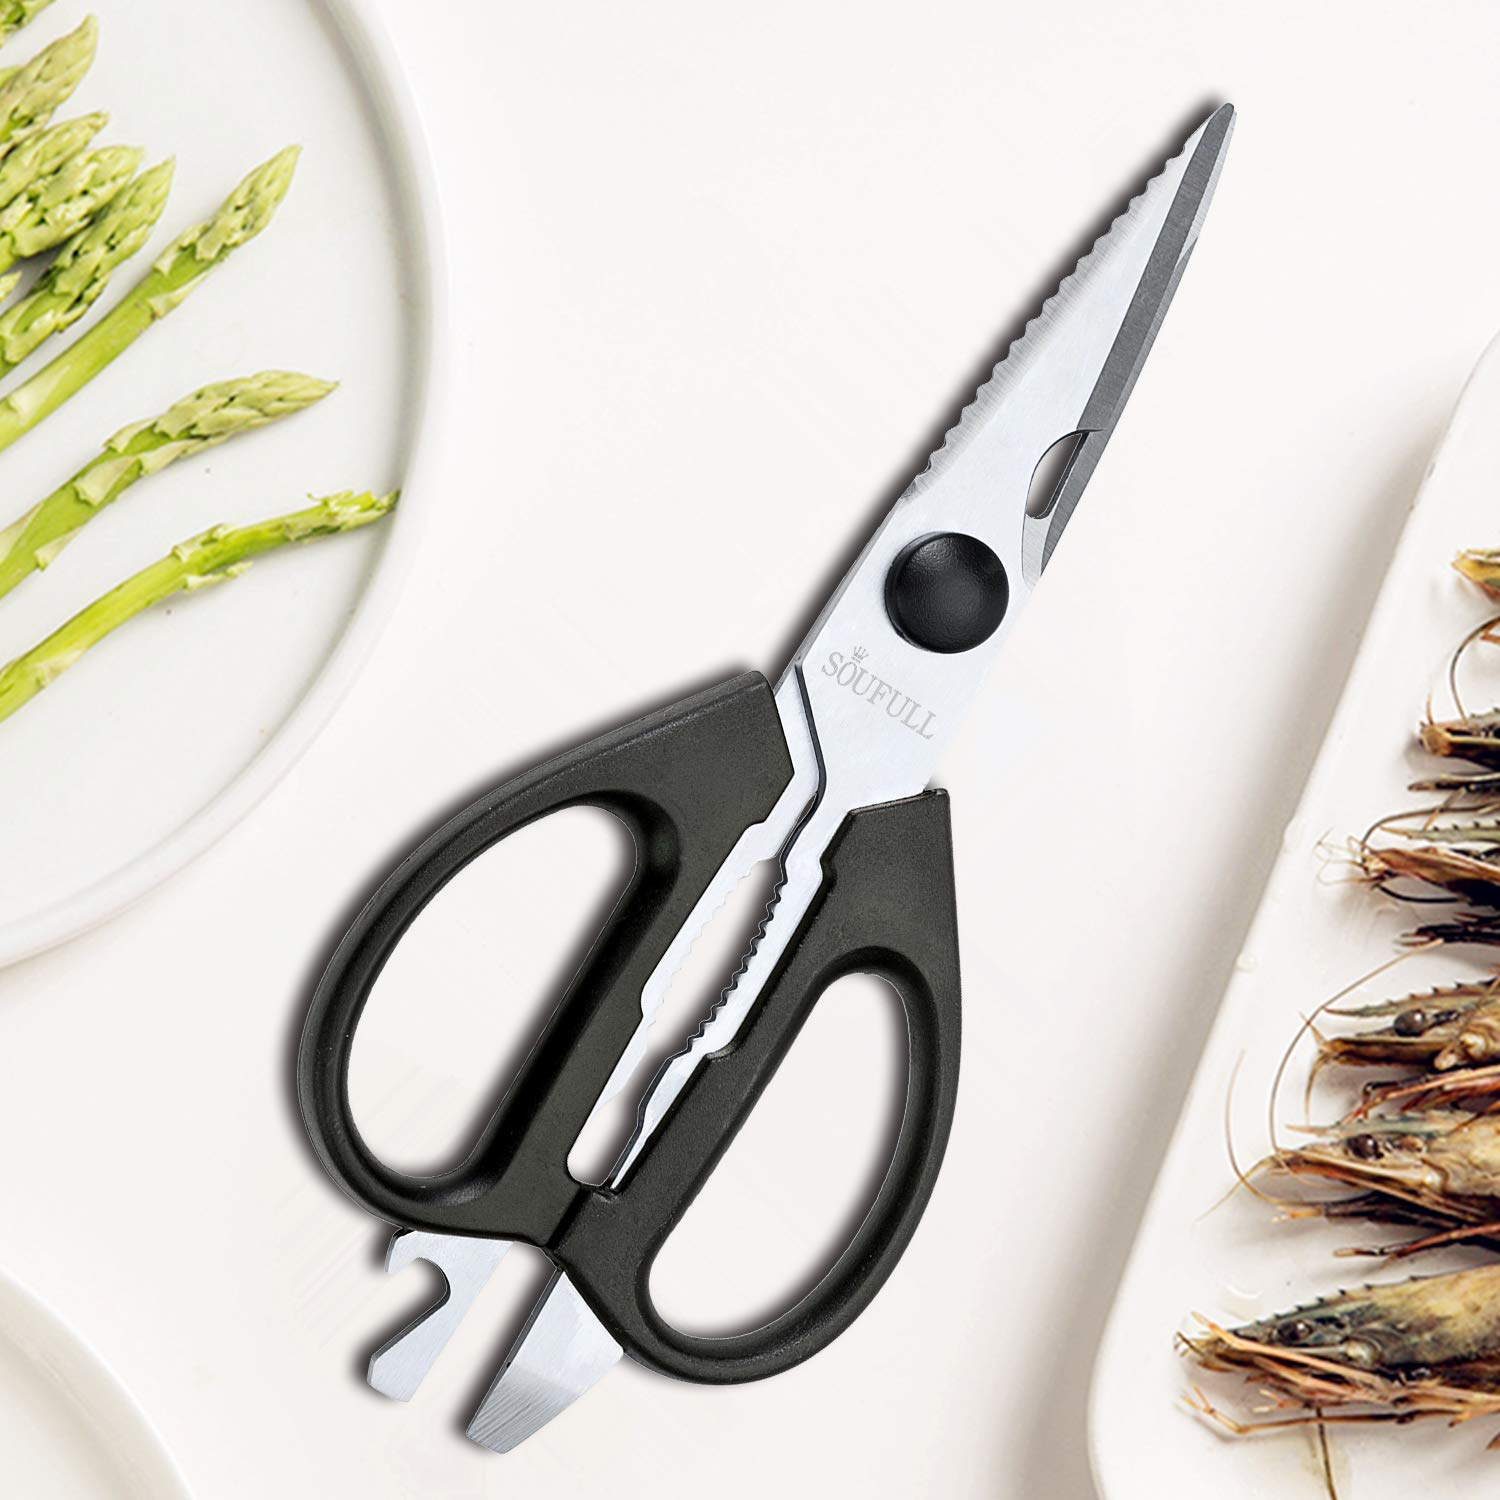 Soufull Heavy Duty Multi Purpose Kitchen Scissors for Chicken,Poultry,Meat-Come-Apart Sharp Shears by Soufull (Image #7)